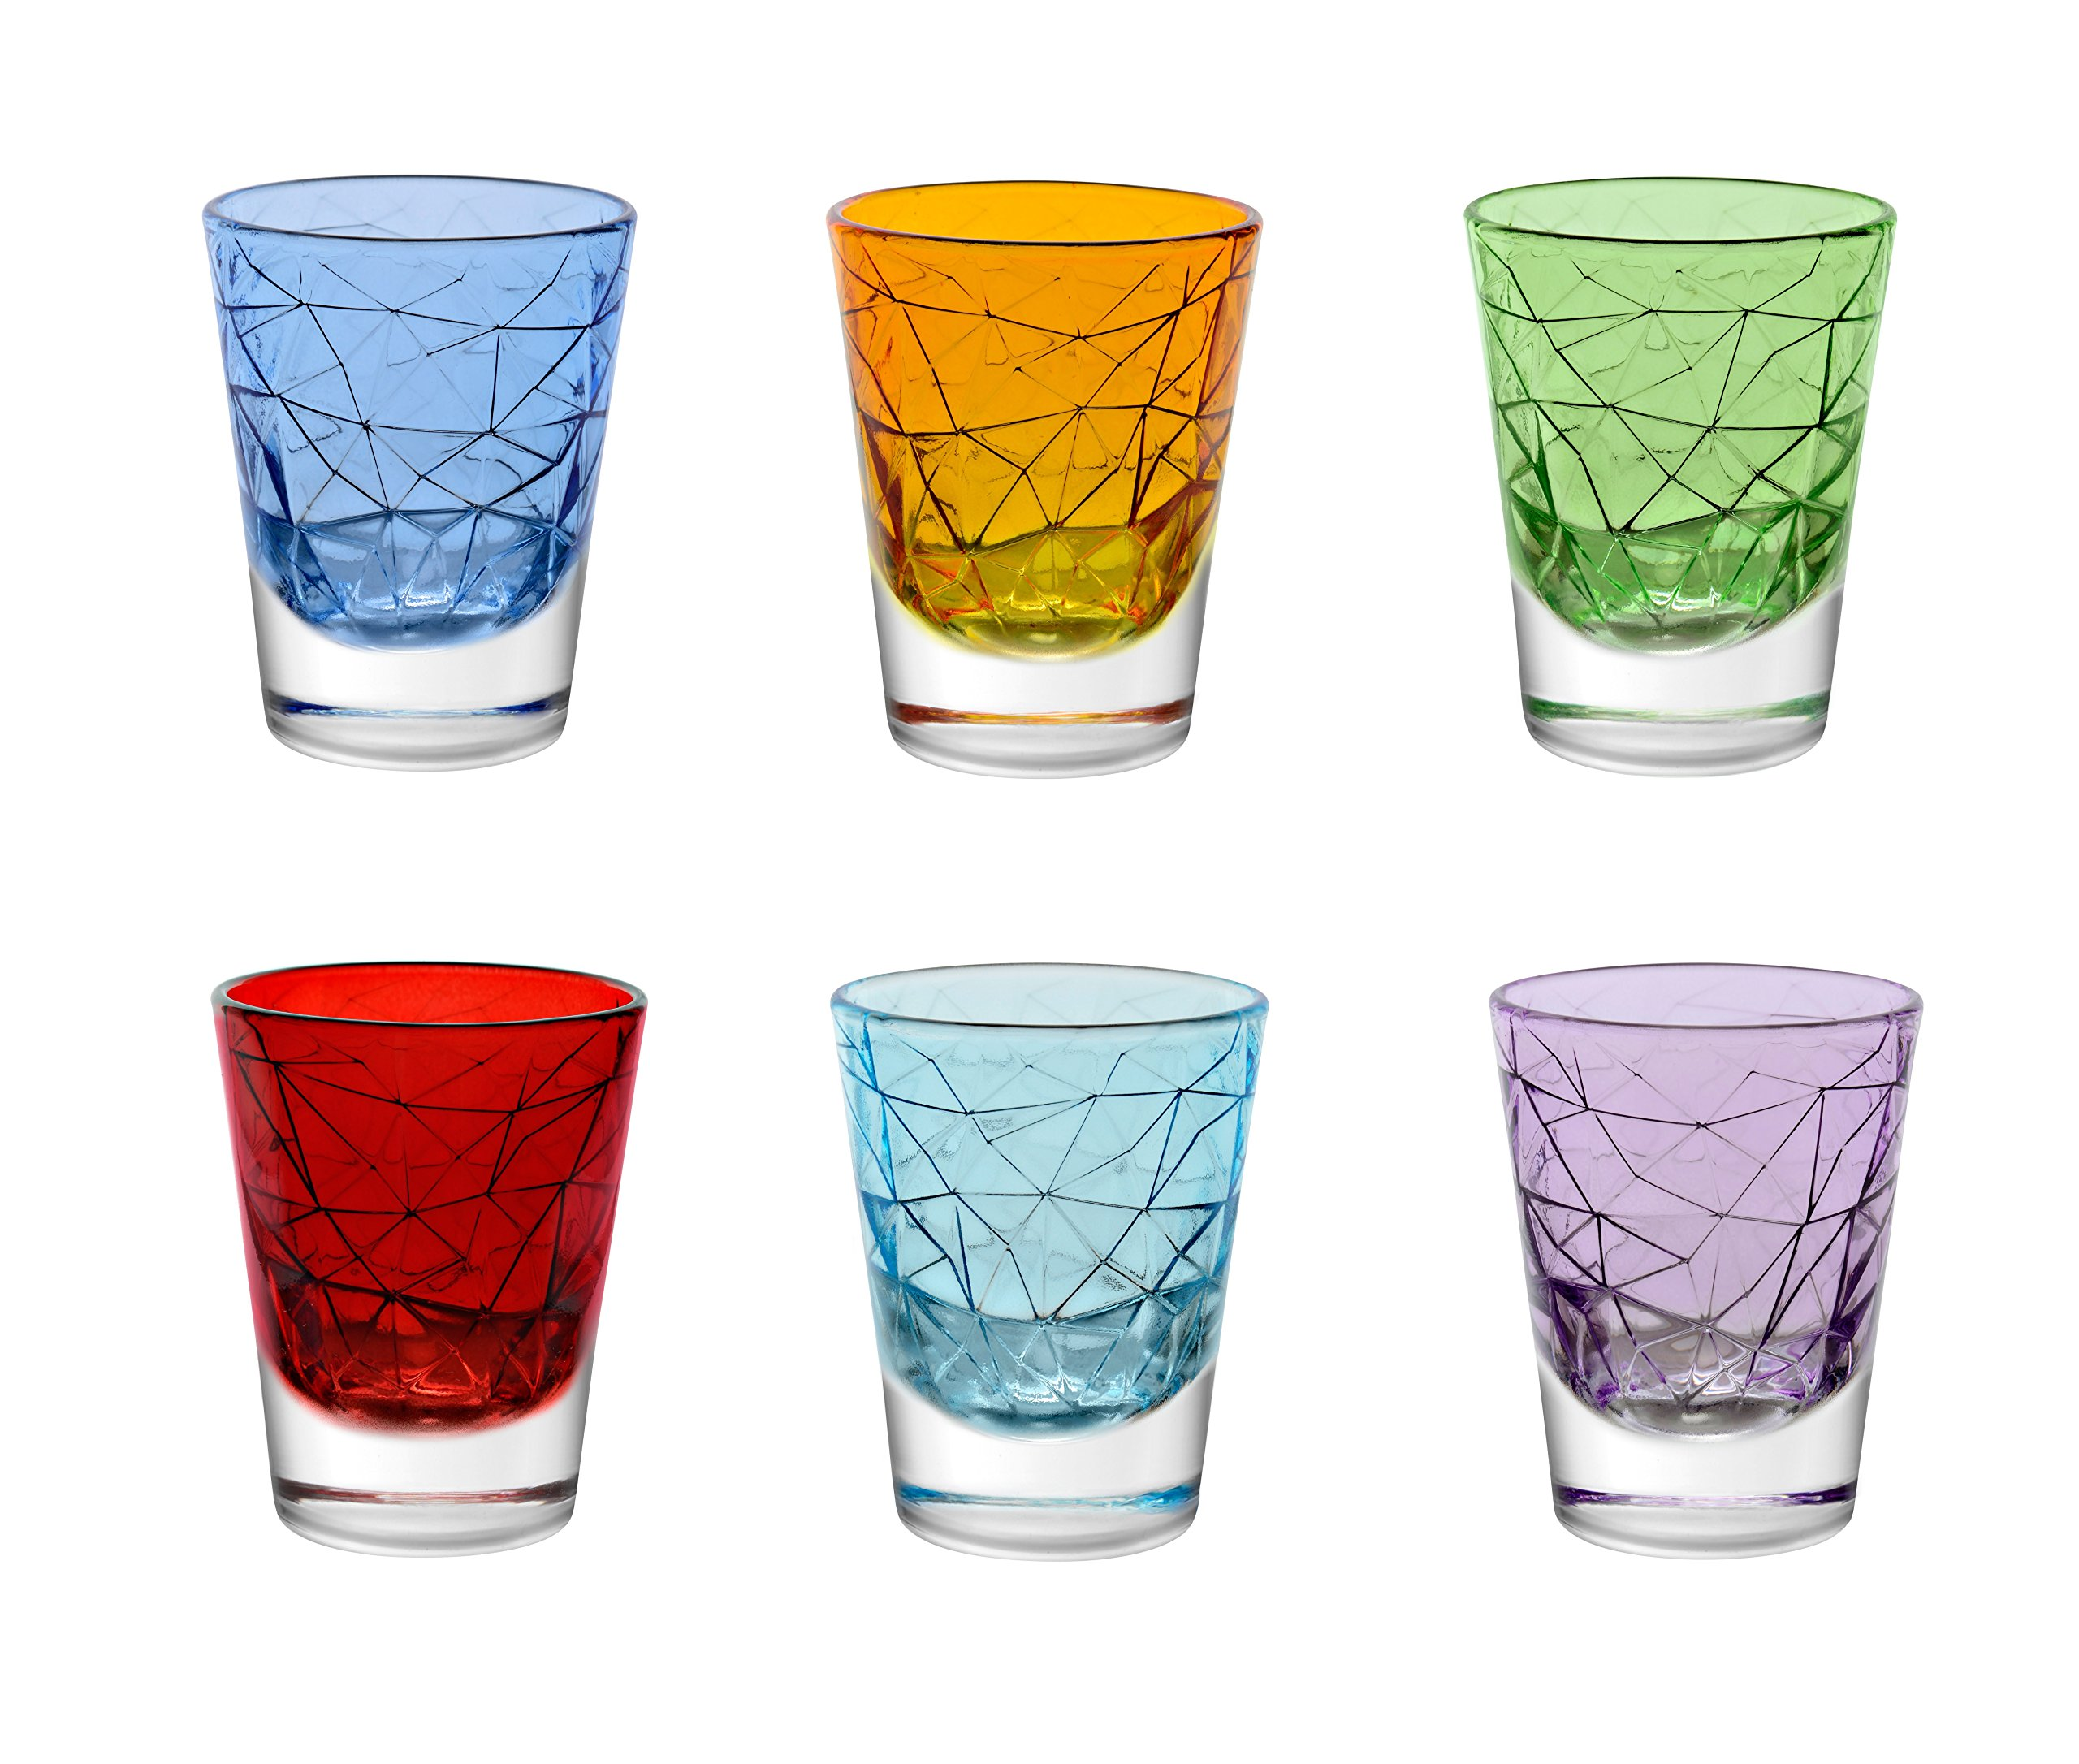 Barski - European Quality - Set of 6 - Assorted Colors - 2.7 oz. - Exclusively Designed - Shot Glasses - Made in Europe